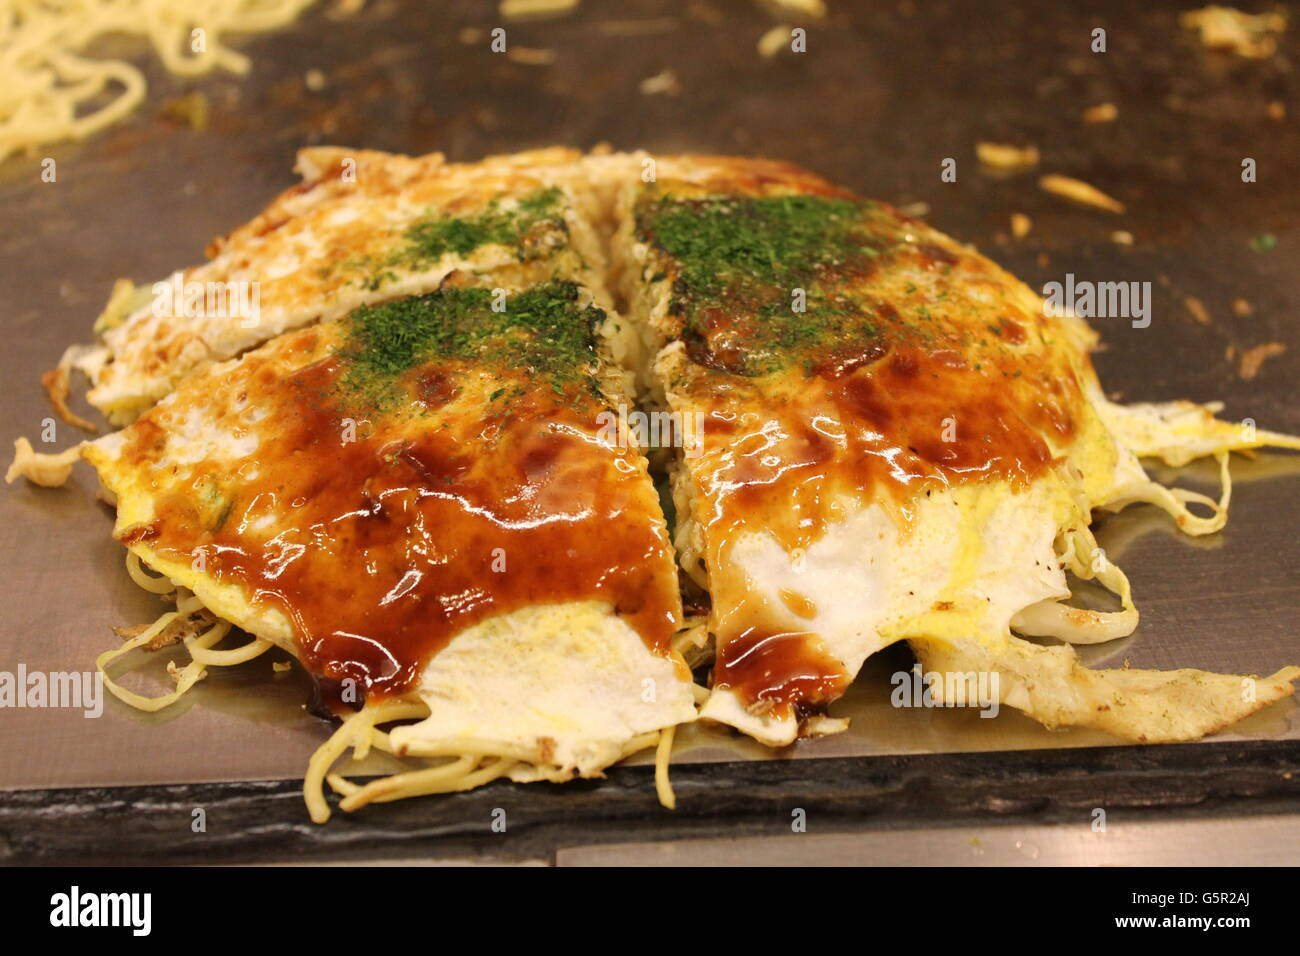 Mouth-watering Okonomiyaki, served Hiroshima-style in Hiroshima, Japan - Stock Image